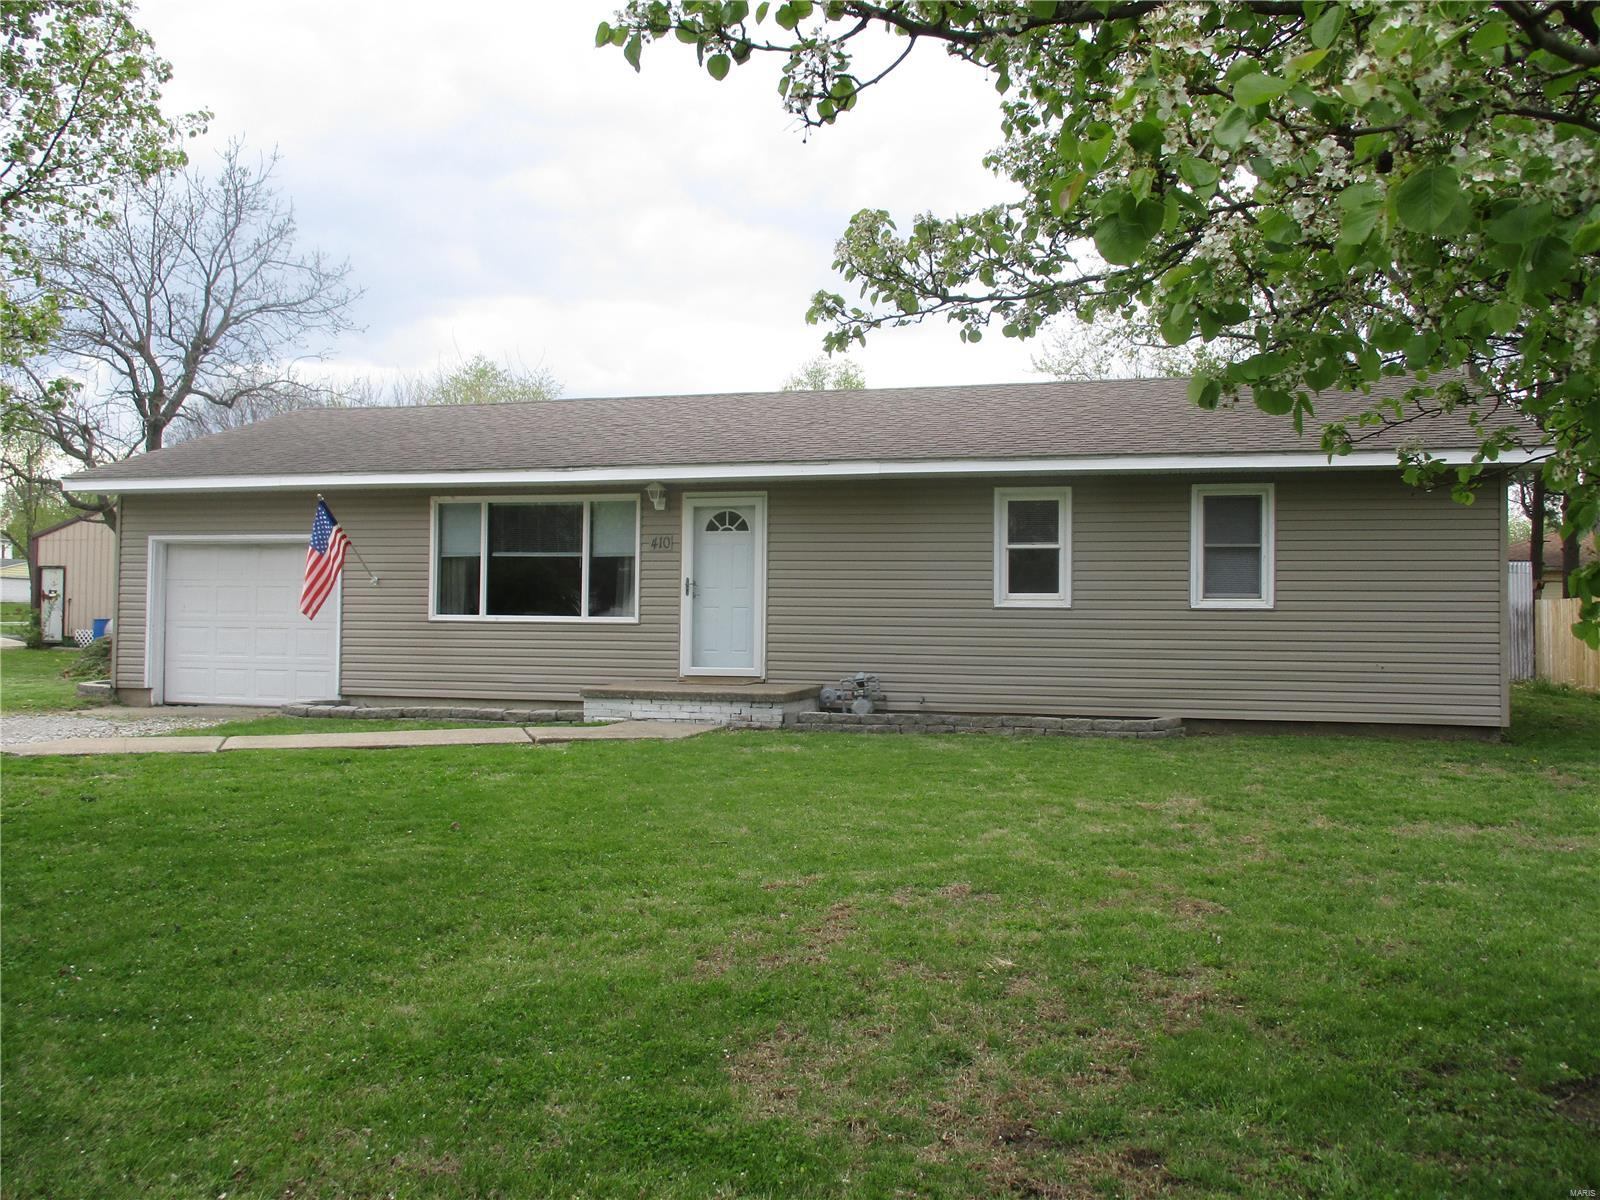 410 N Union Property Photo - Bunker Hill, IL real estate listing